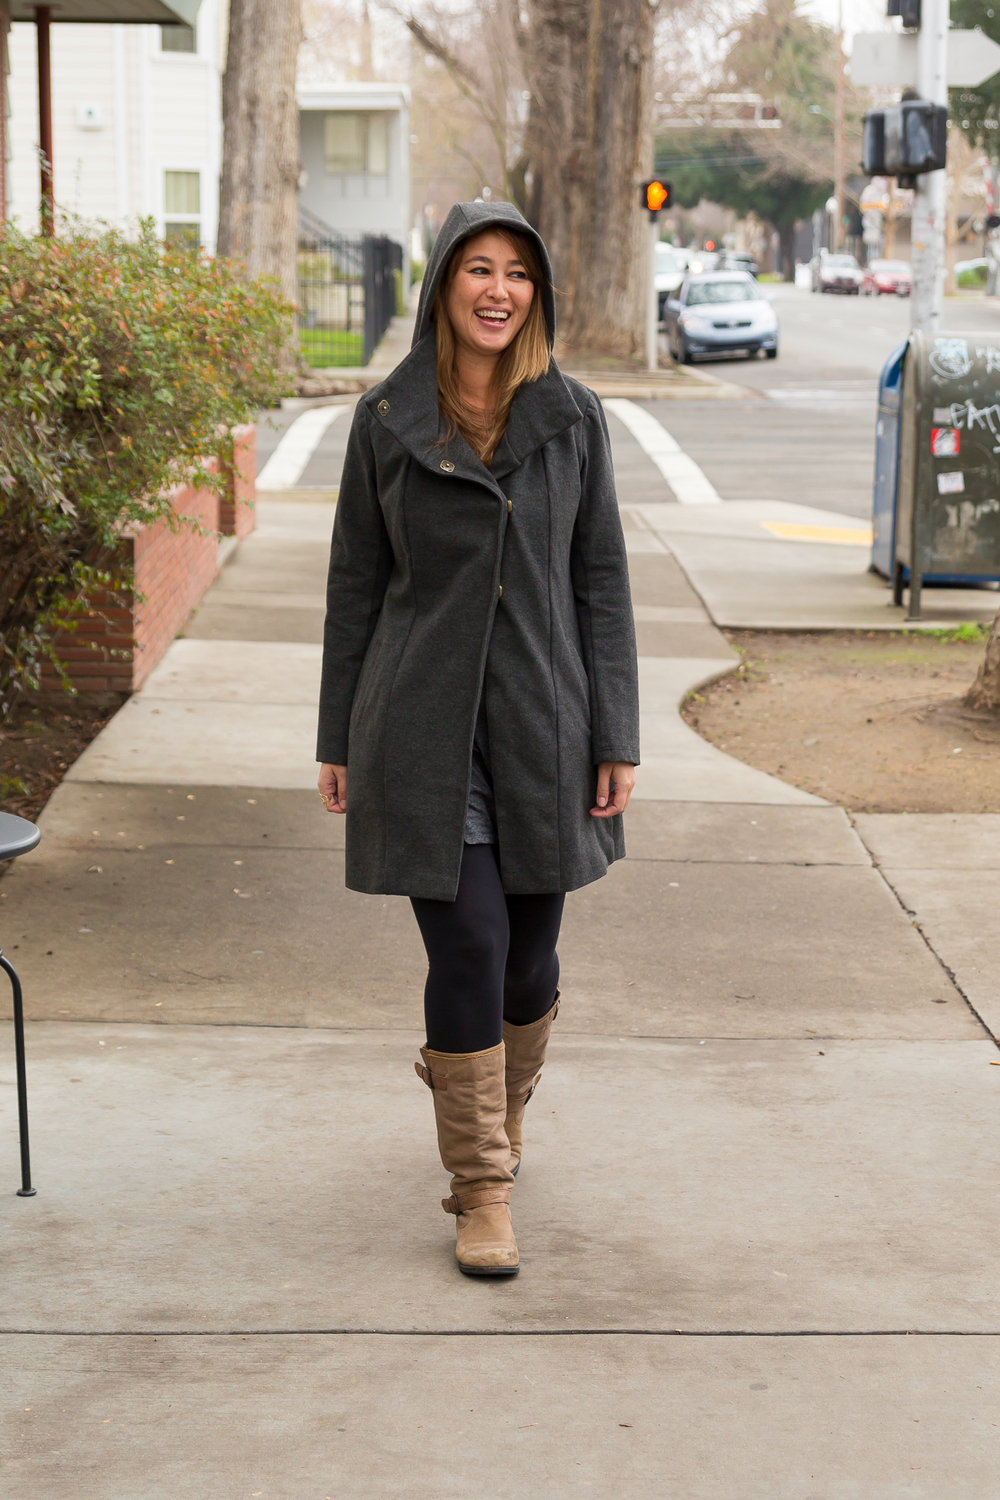 Melissa Fleis' All Day Coat